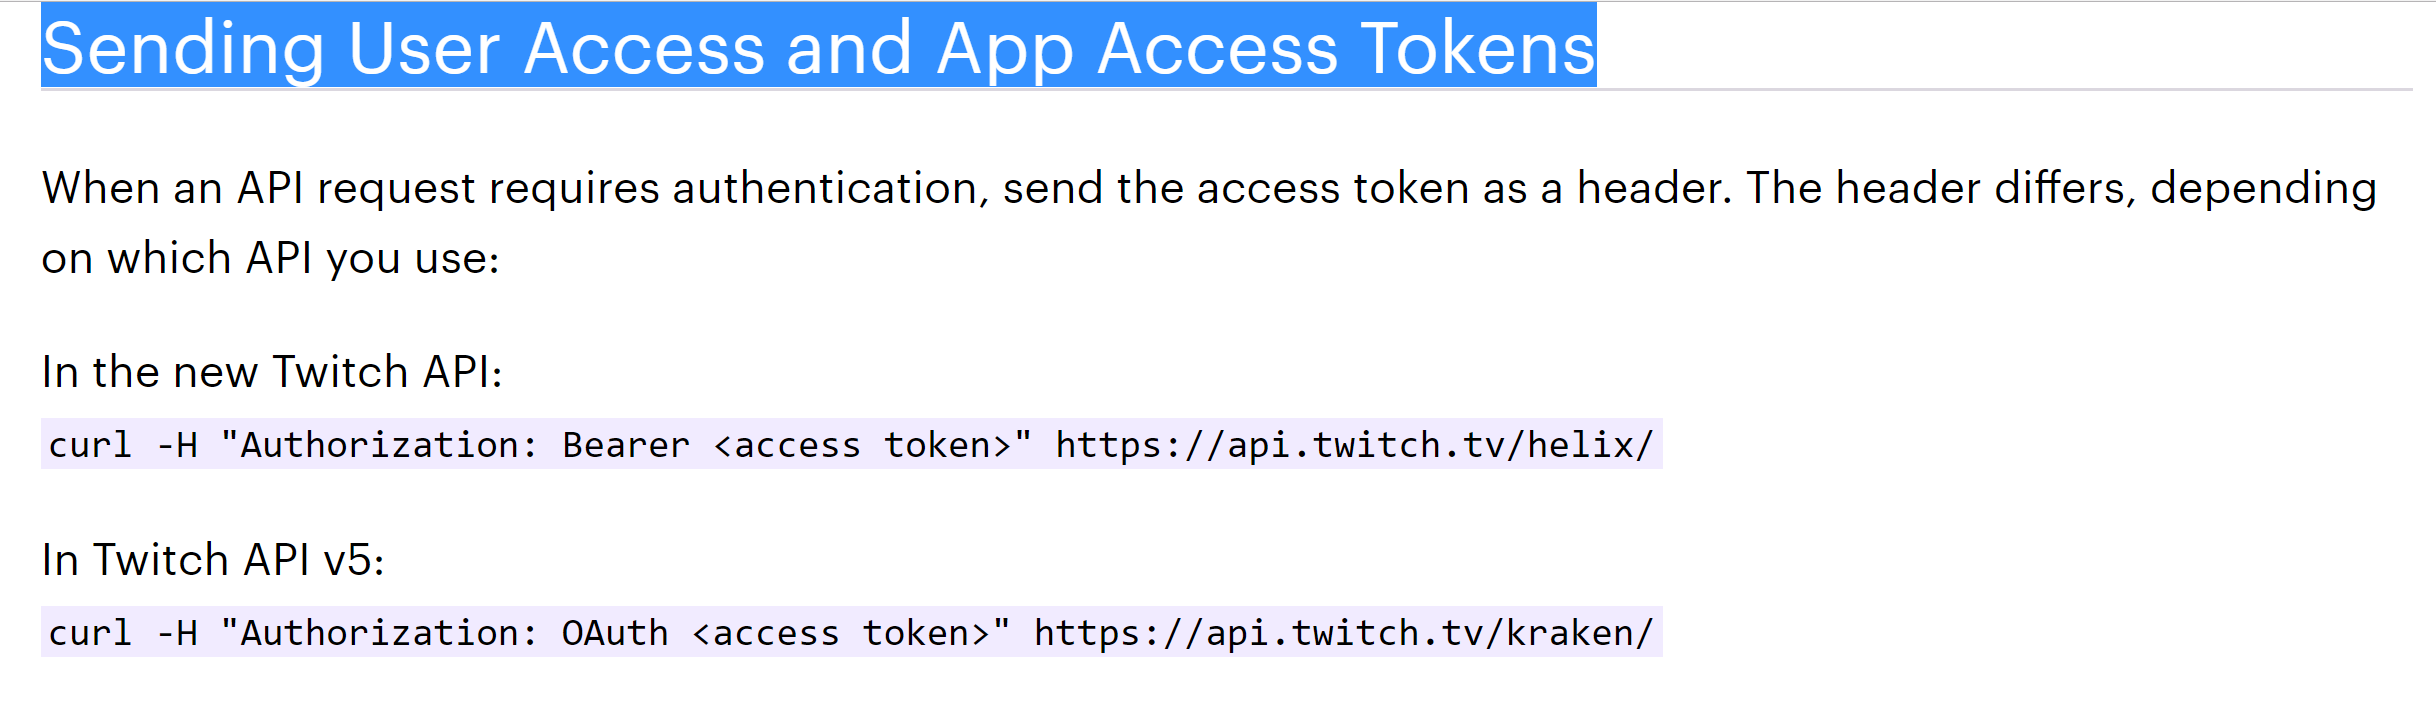 Helix Sending User Access and App Access Tokens Trouble